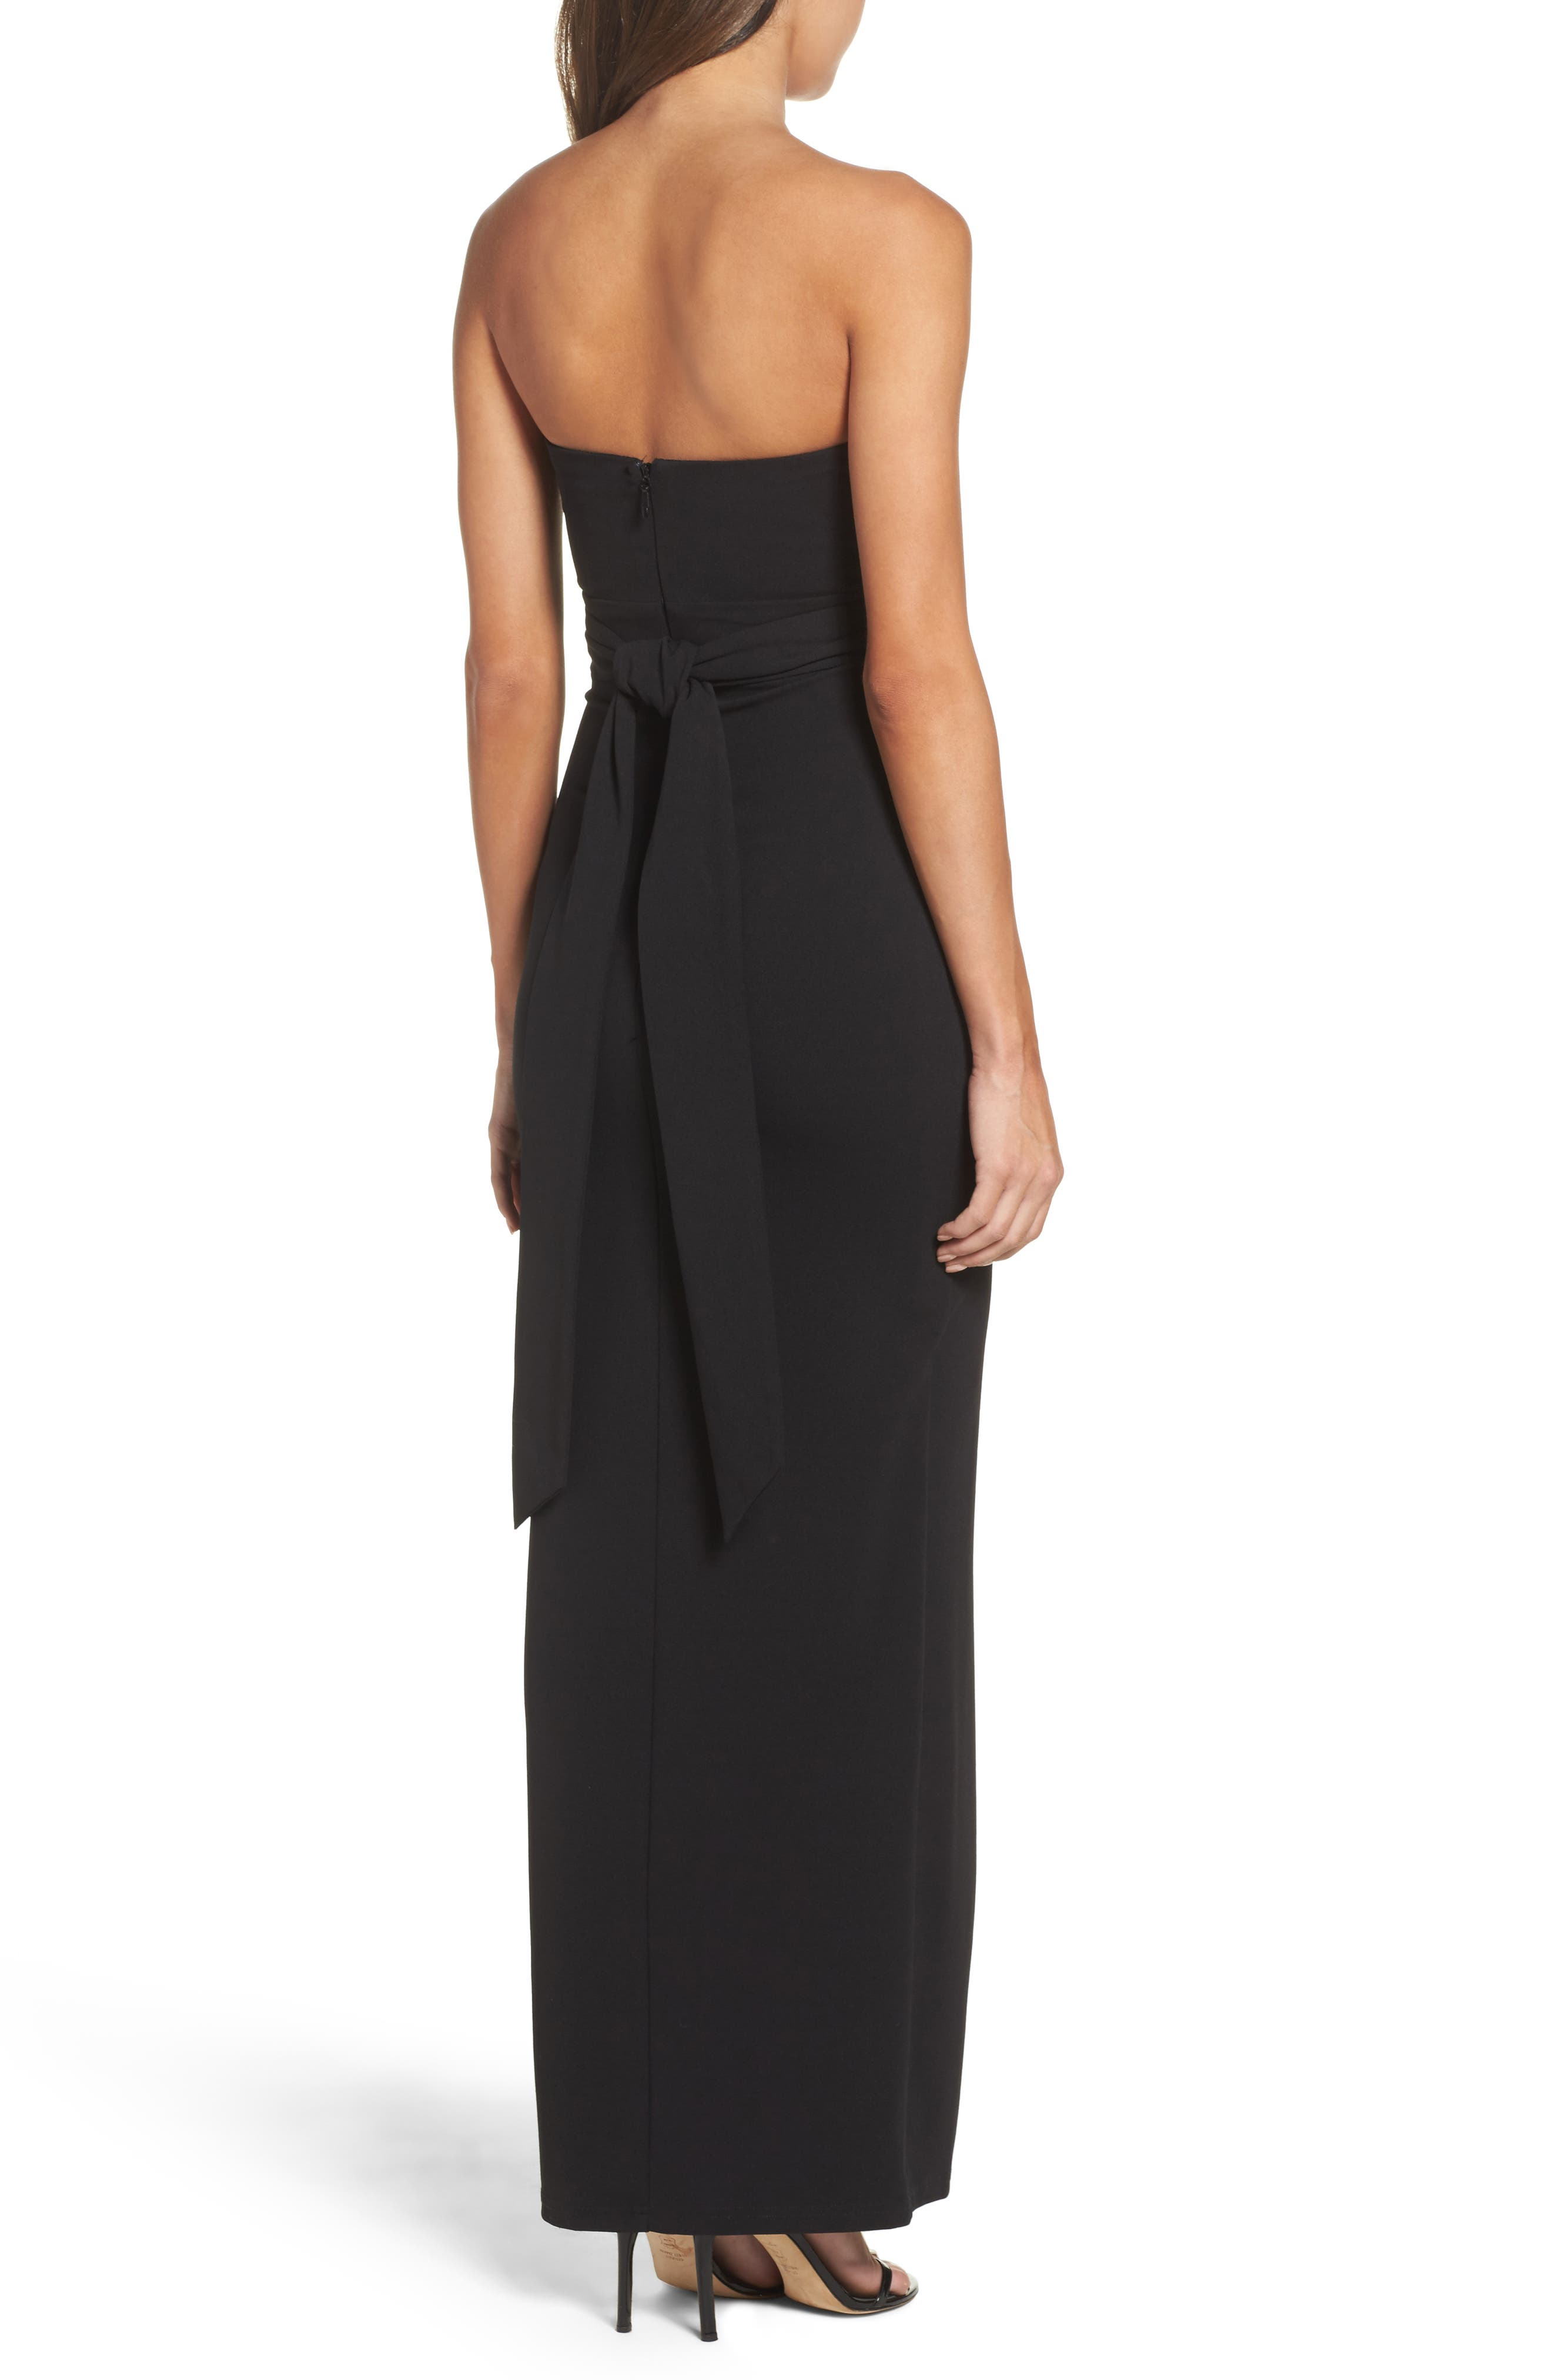 Own the Night Strapless Maxi Dress,                             Alternate thumbnail 2, color,                             001